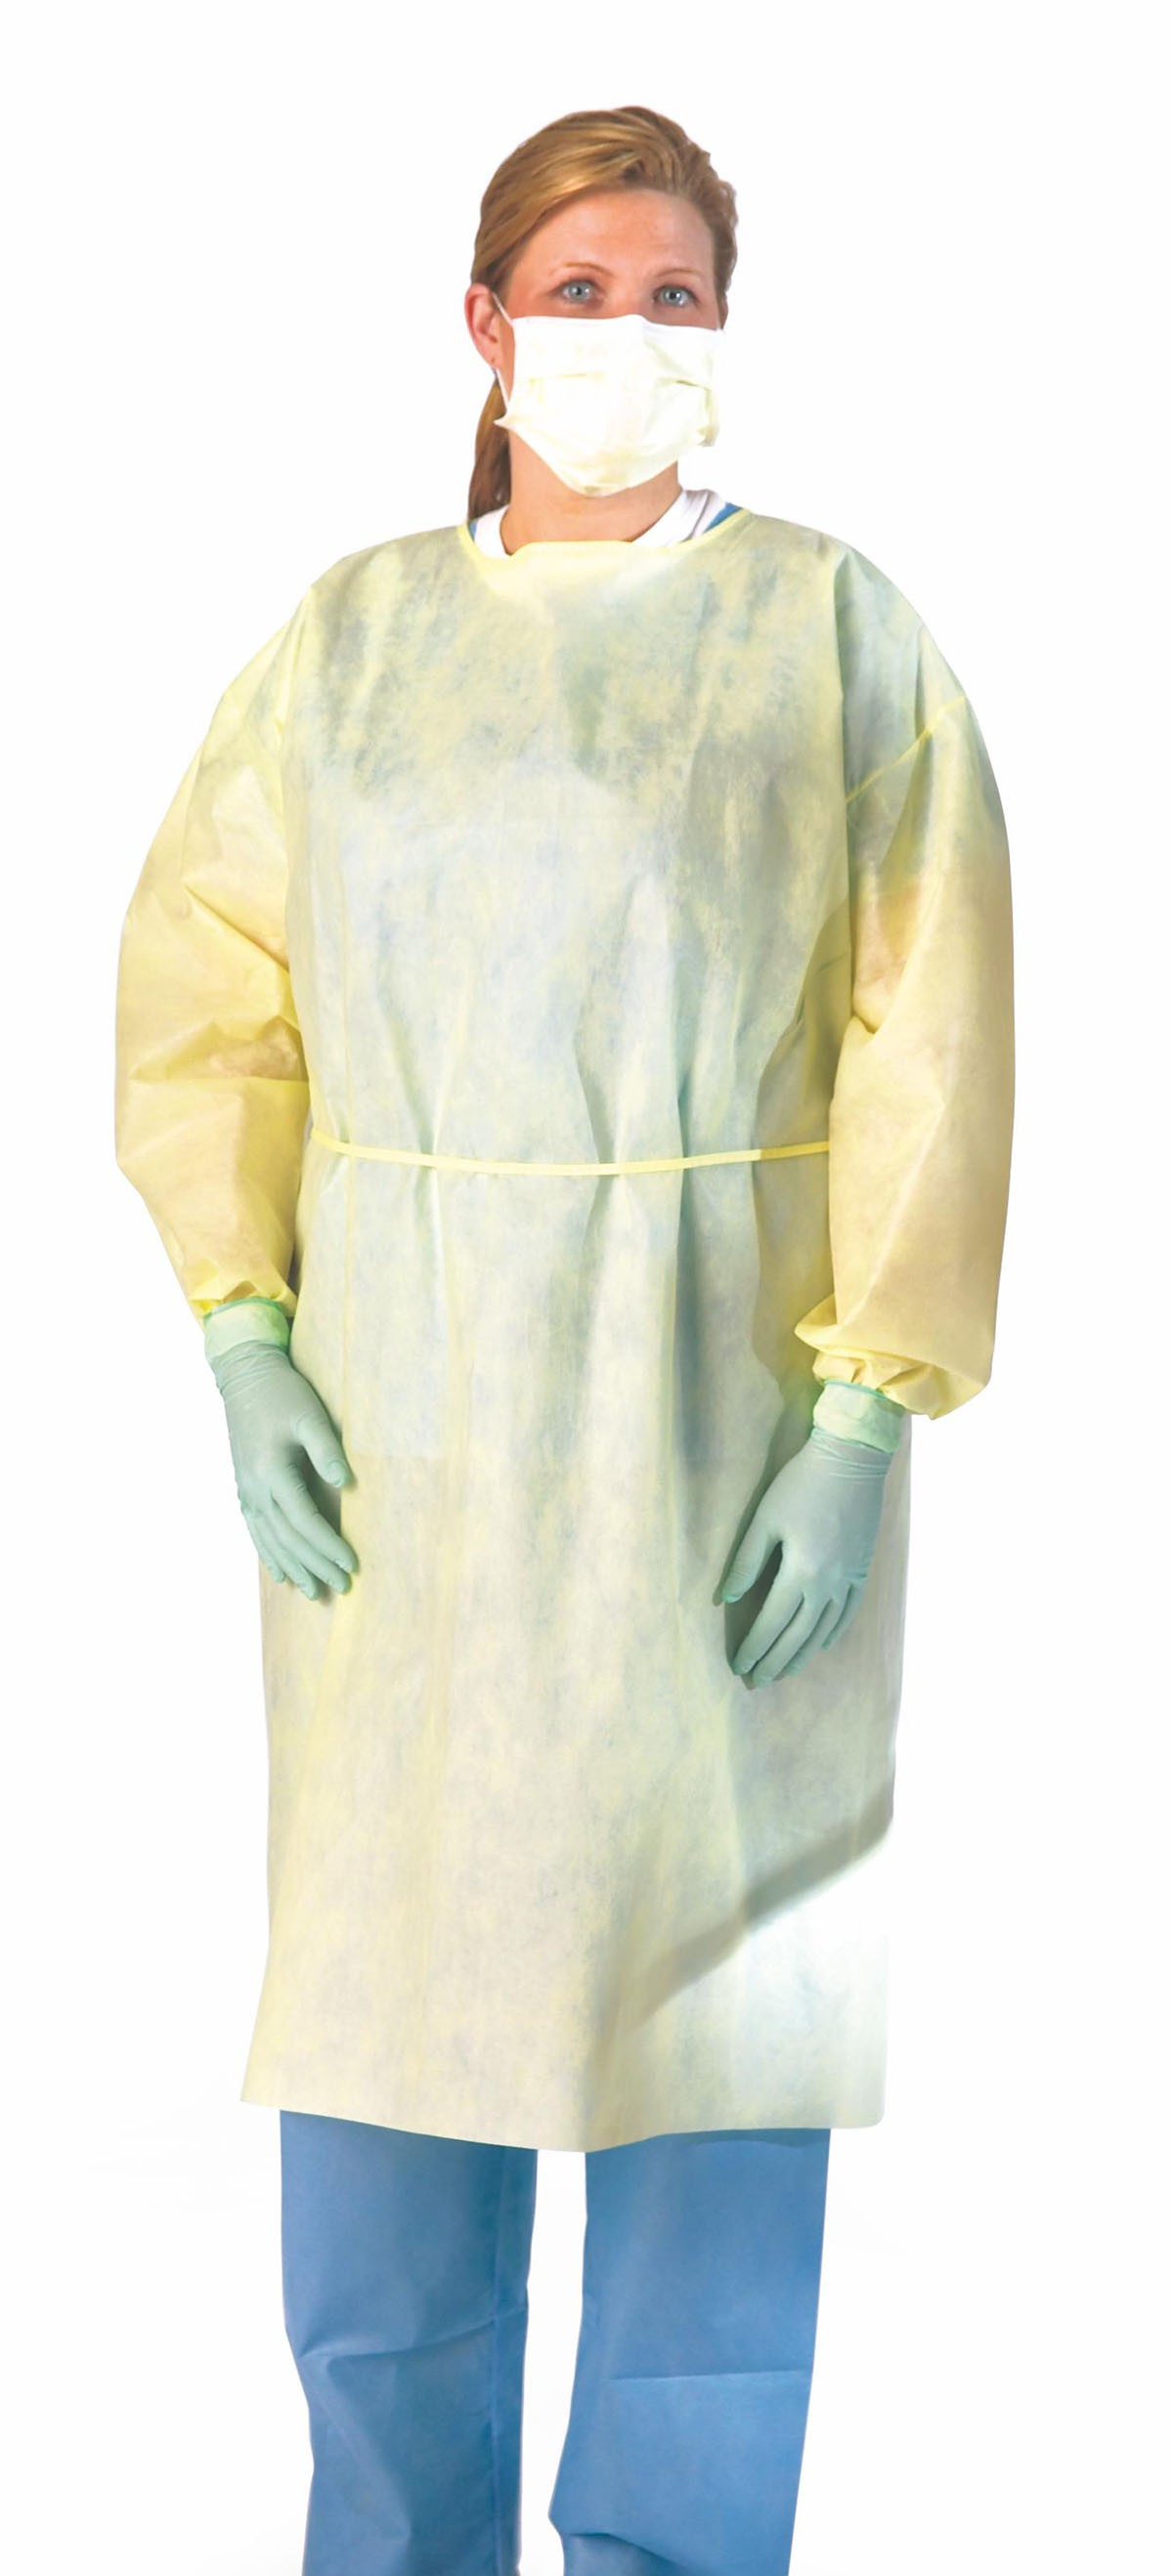 Medline lightweight multi-ply fluid resistant isolation gown, yellow